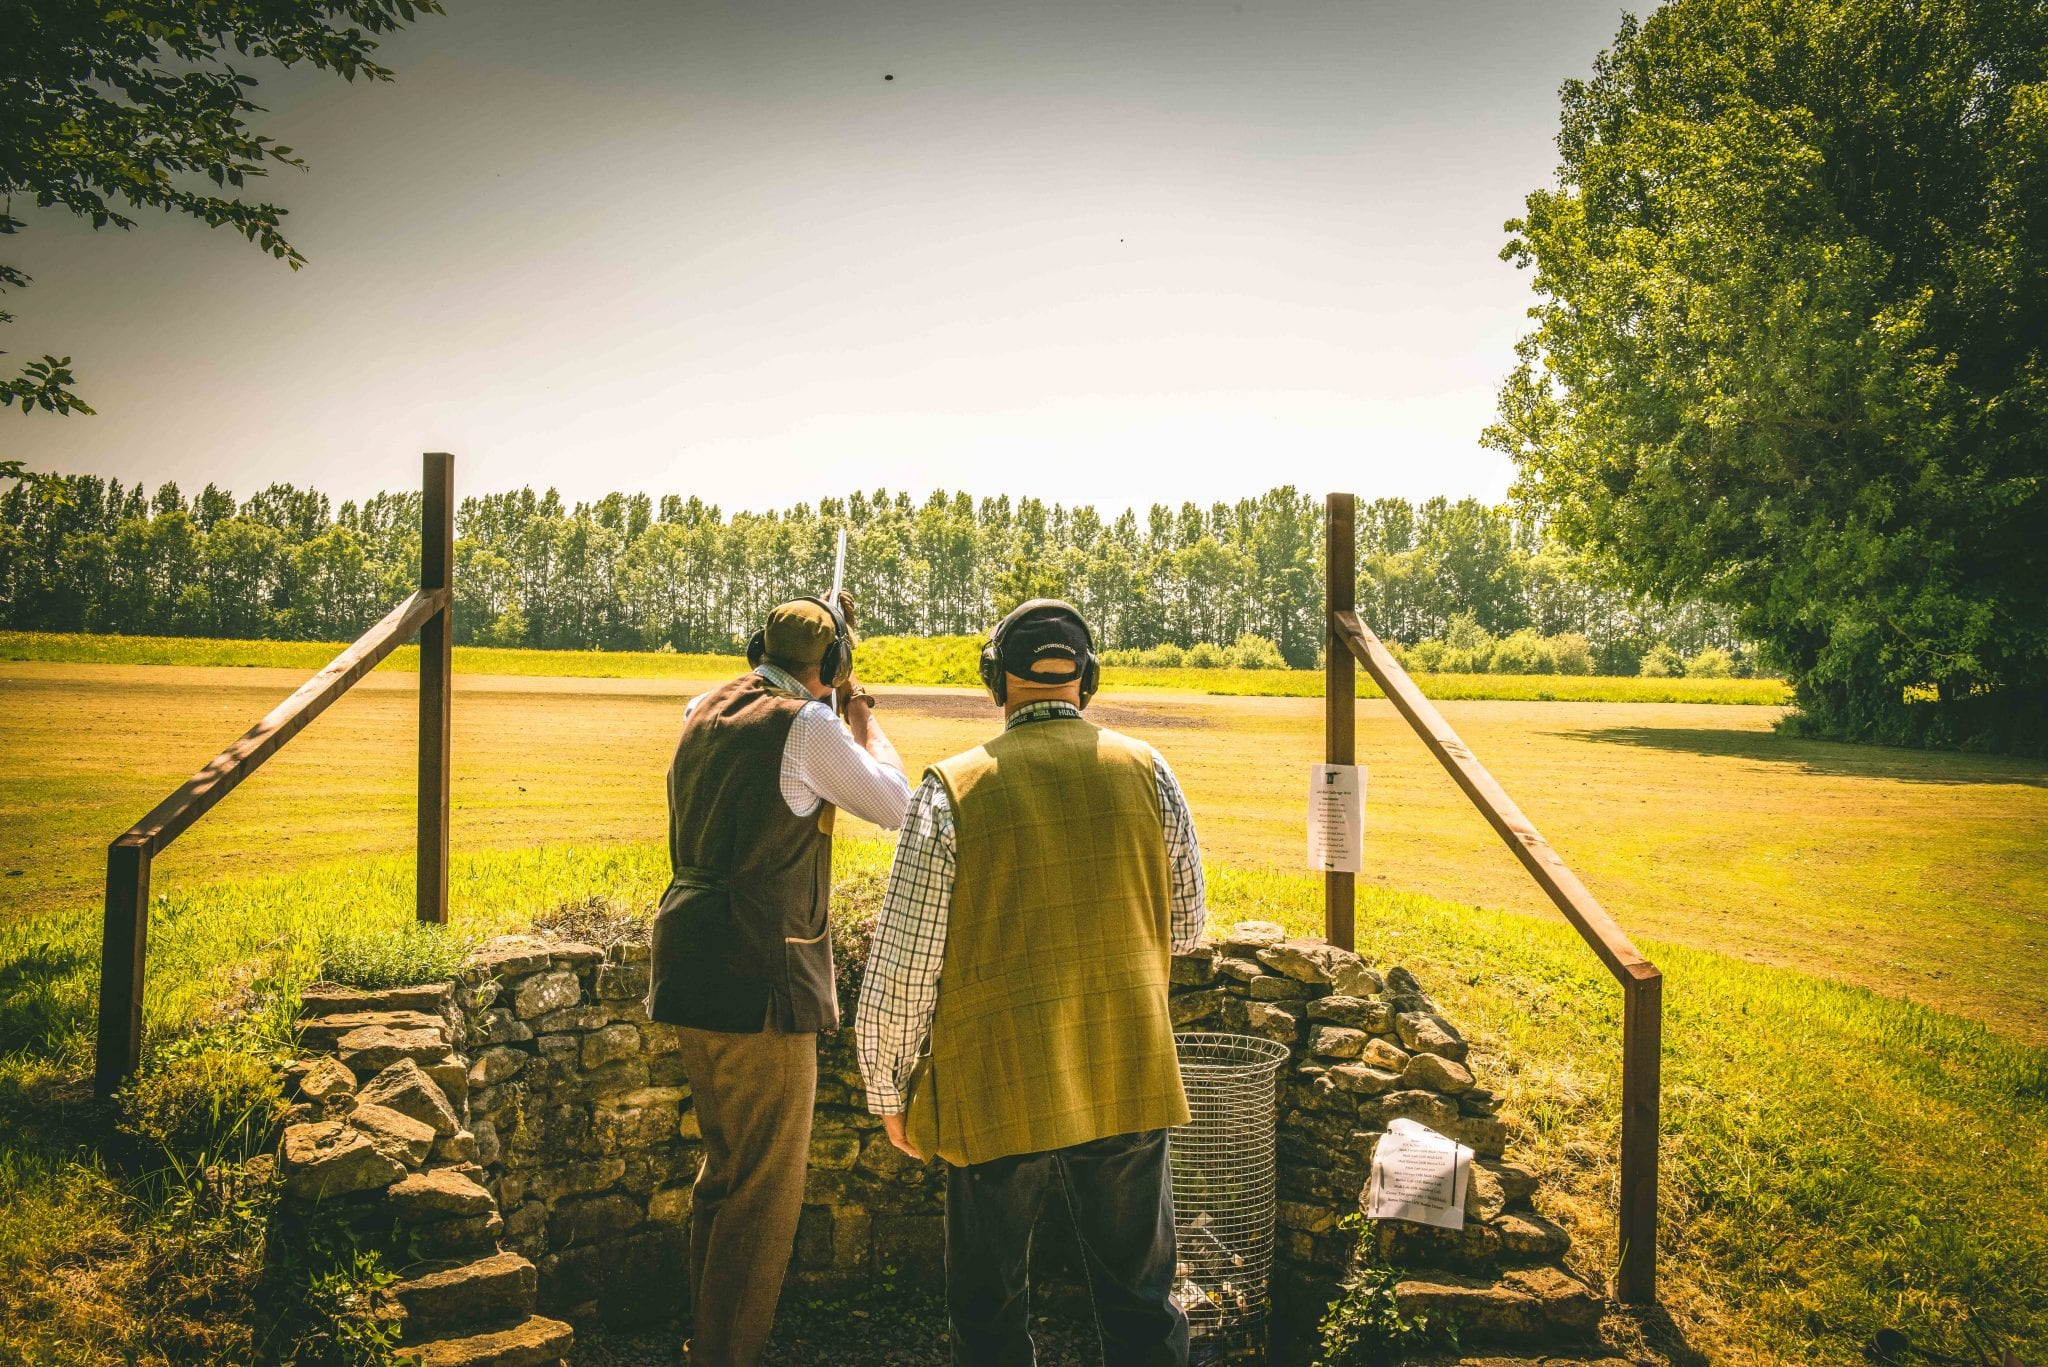 A customer shoots the grouse butt on a game shooting lesson at Lady's Wood